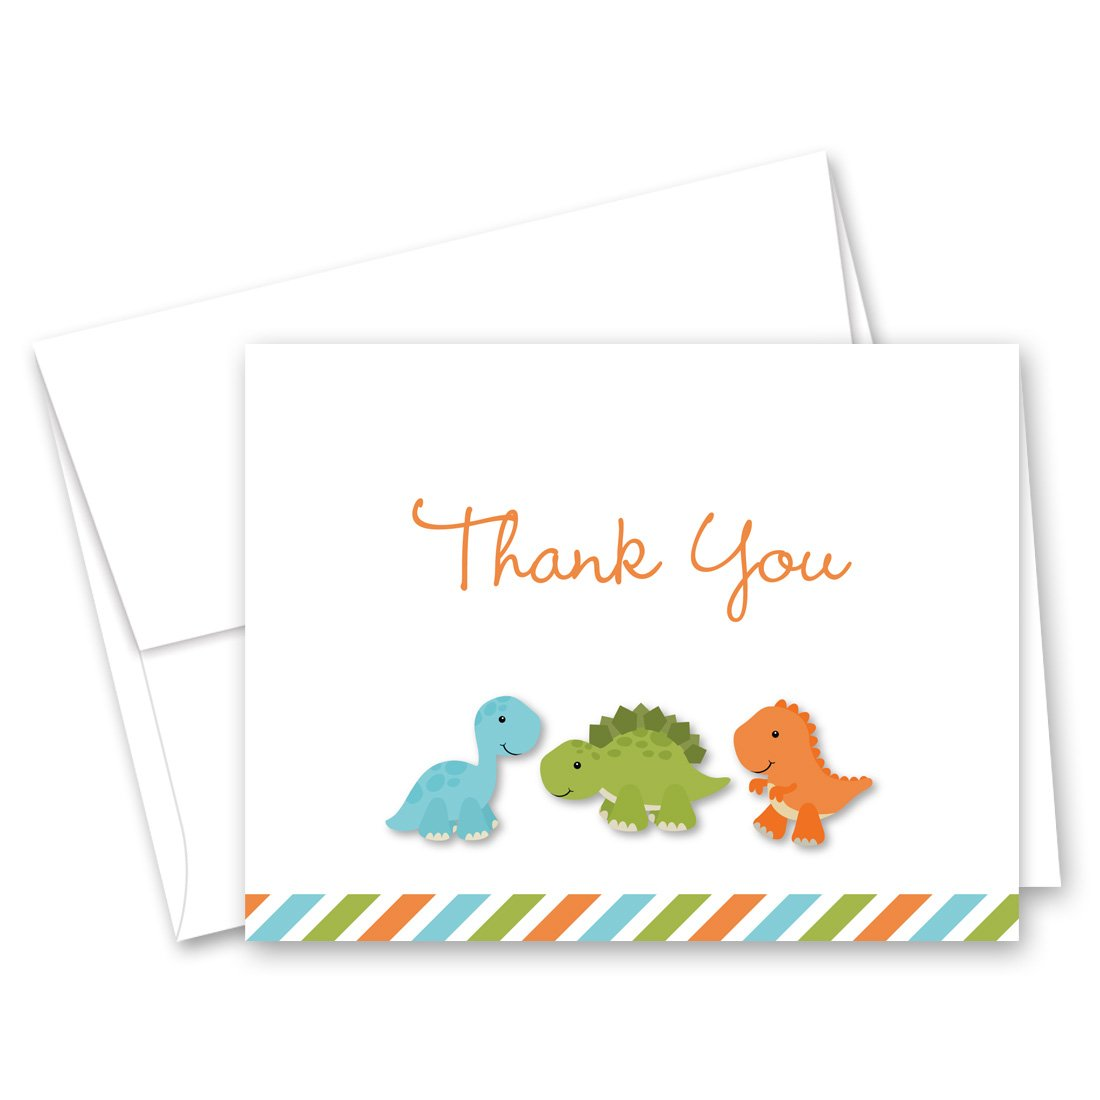 MyExpression.com 50 Cnt Dinosaur Baby Shower or Kids Birthday Thank You Cards by MyExpression.com